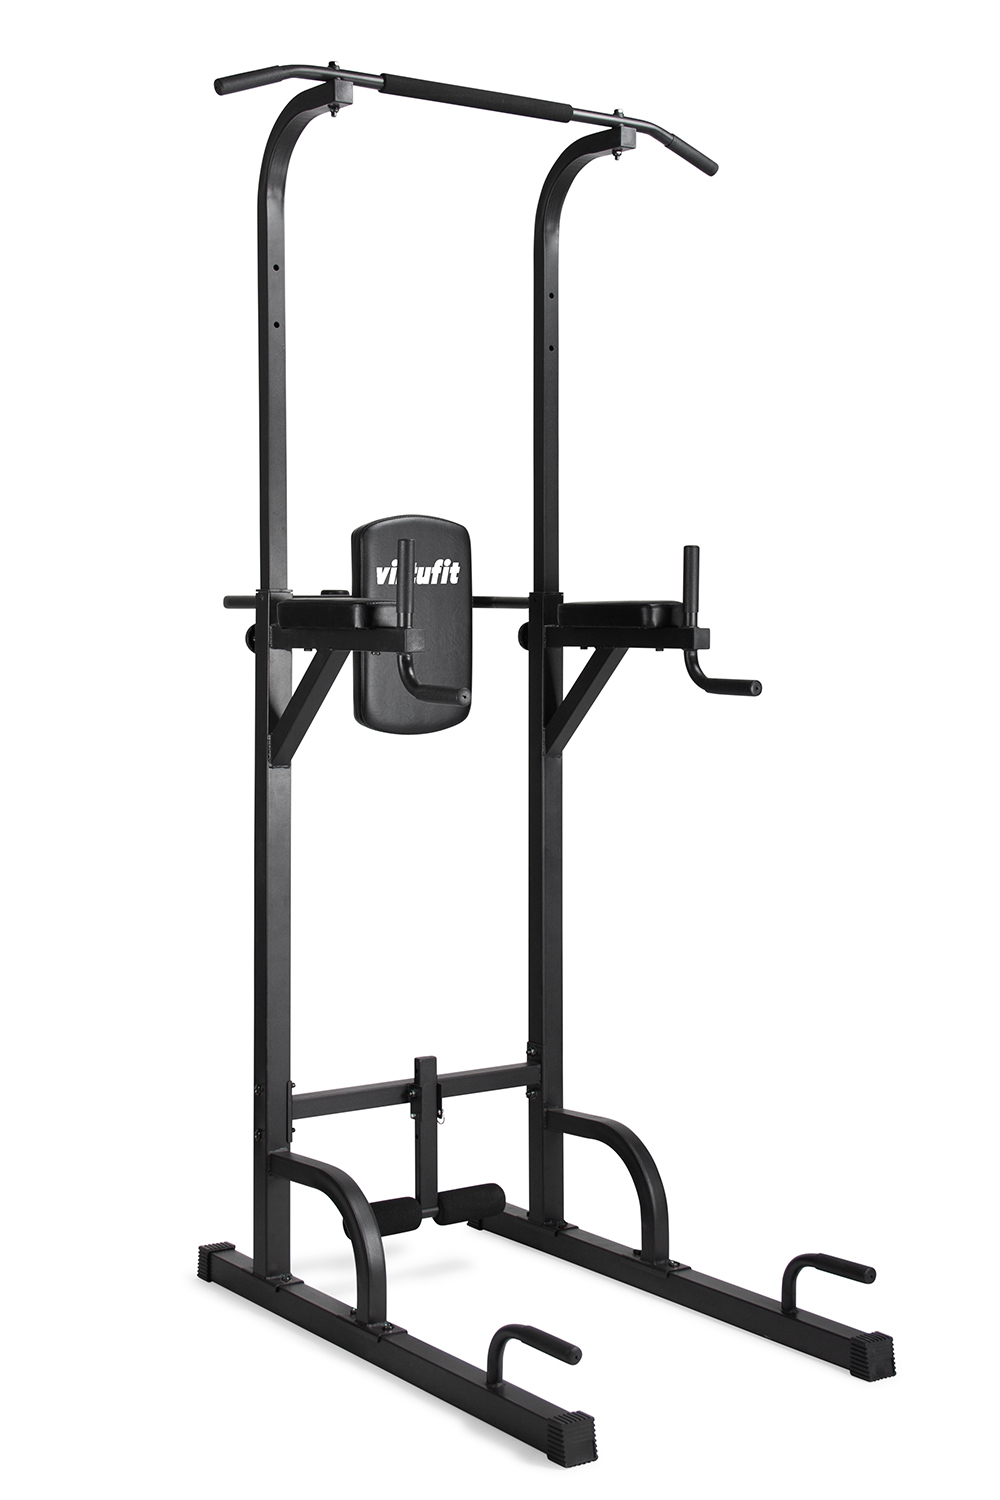 VirtuFit Verstelbare Power Tower Pull Up Station Dip Station